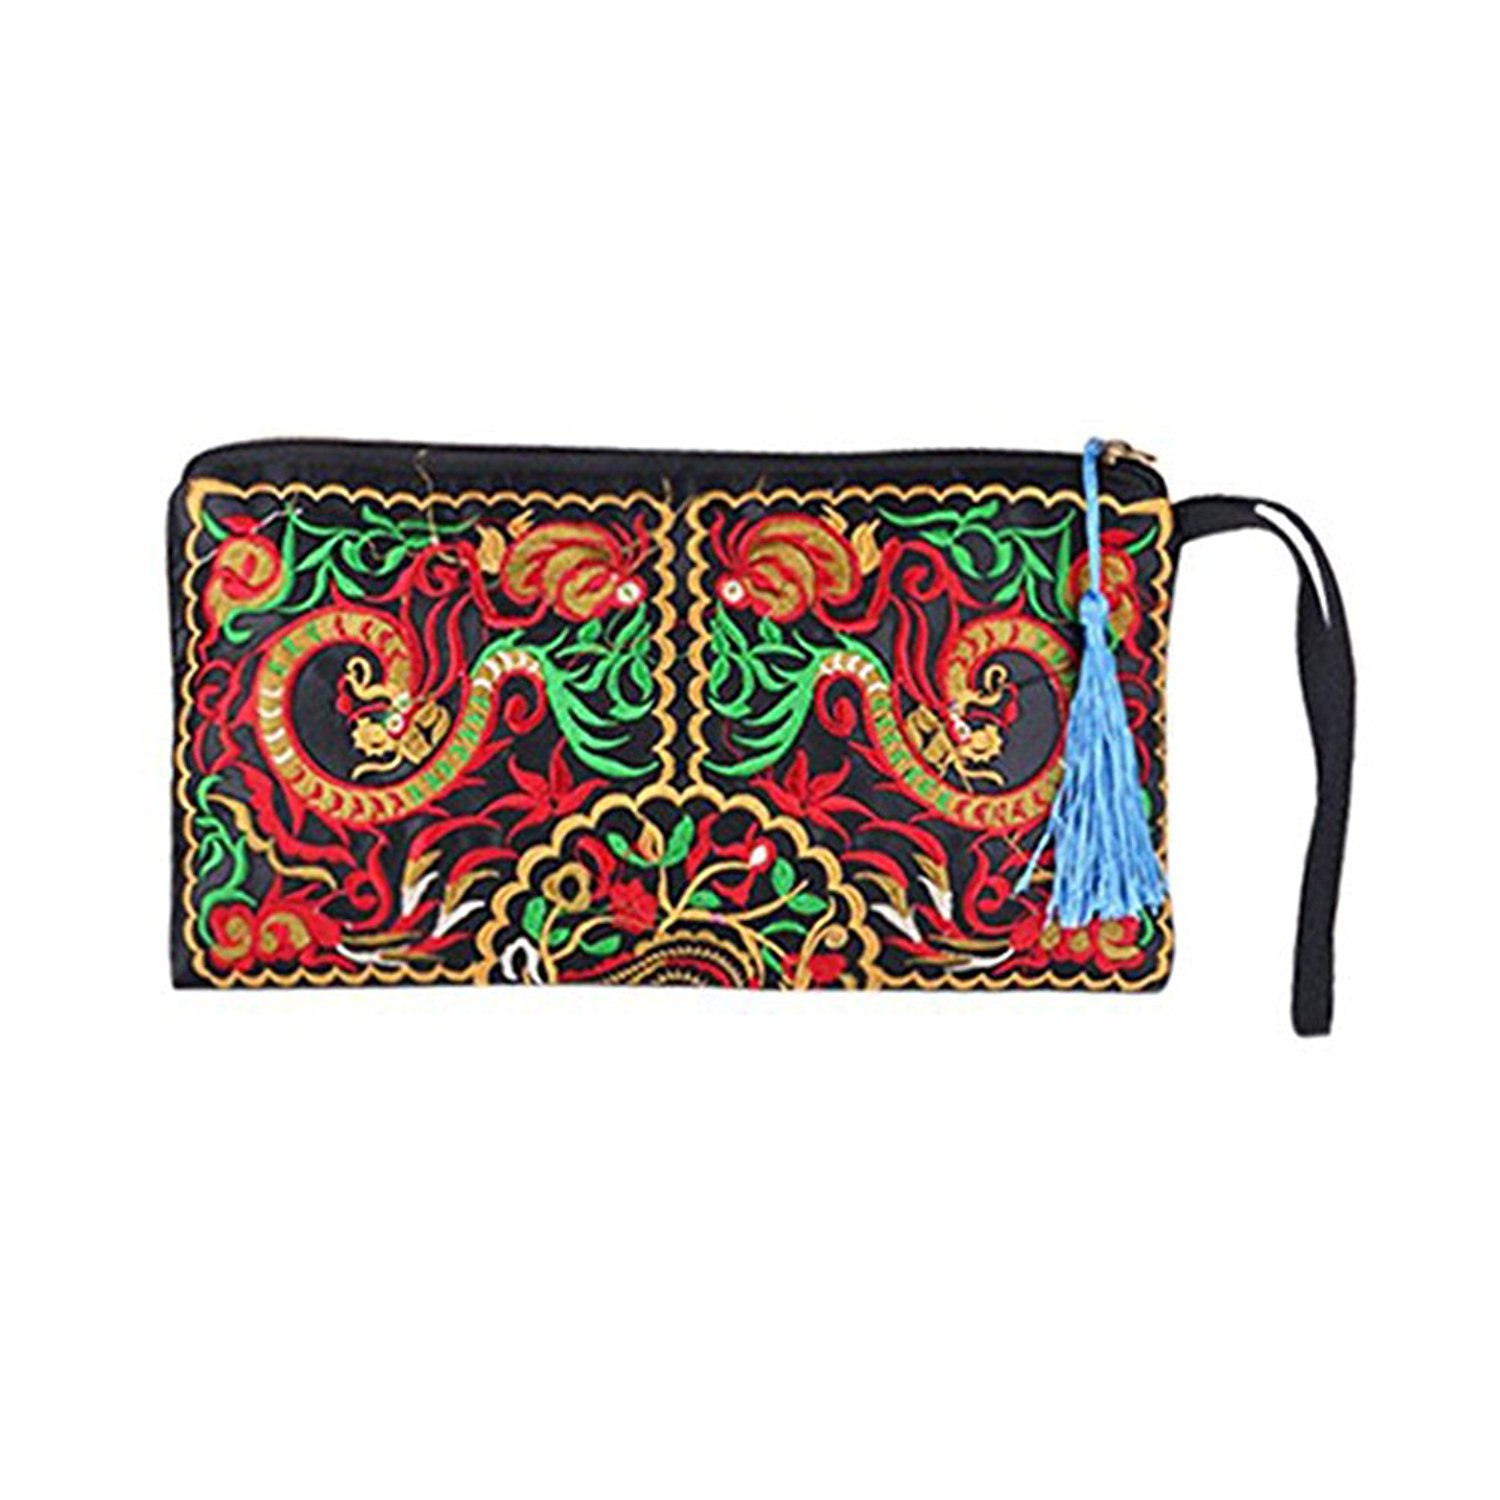 Tinksky Bag Purse Tinksky Retro Ethnic Embroider Wallet Pouch, Gifts for Mothers or gift for women girls (Dragon)